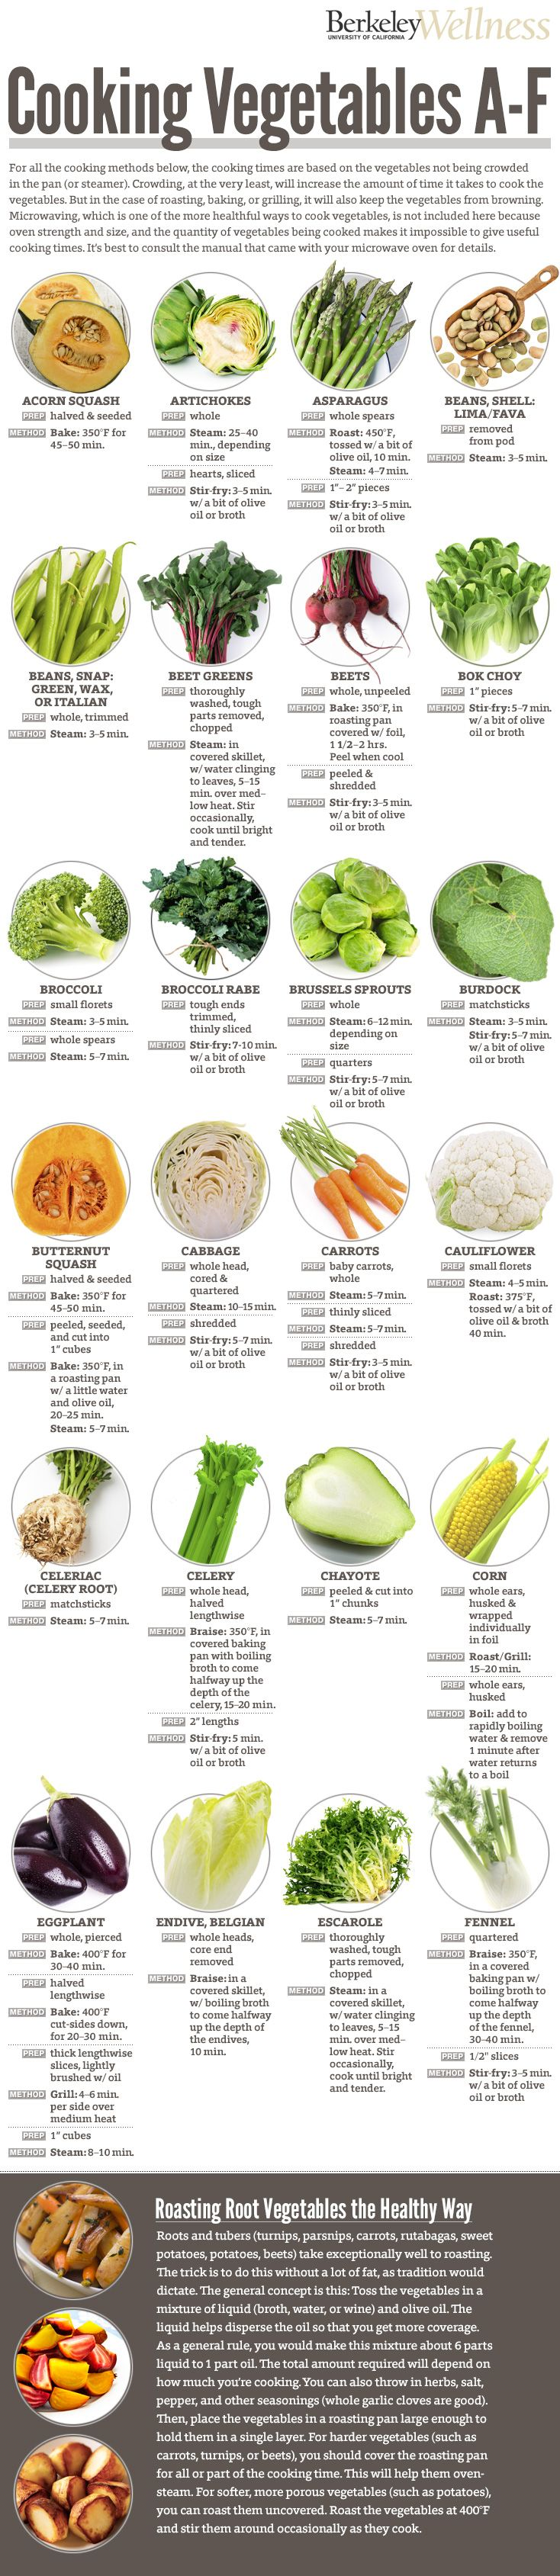 Cooking Vegetables A-F, Cooking tips, Infographic